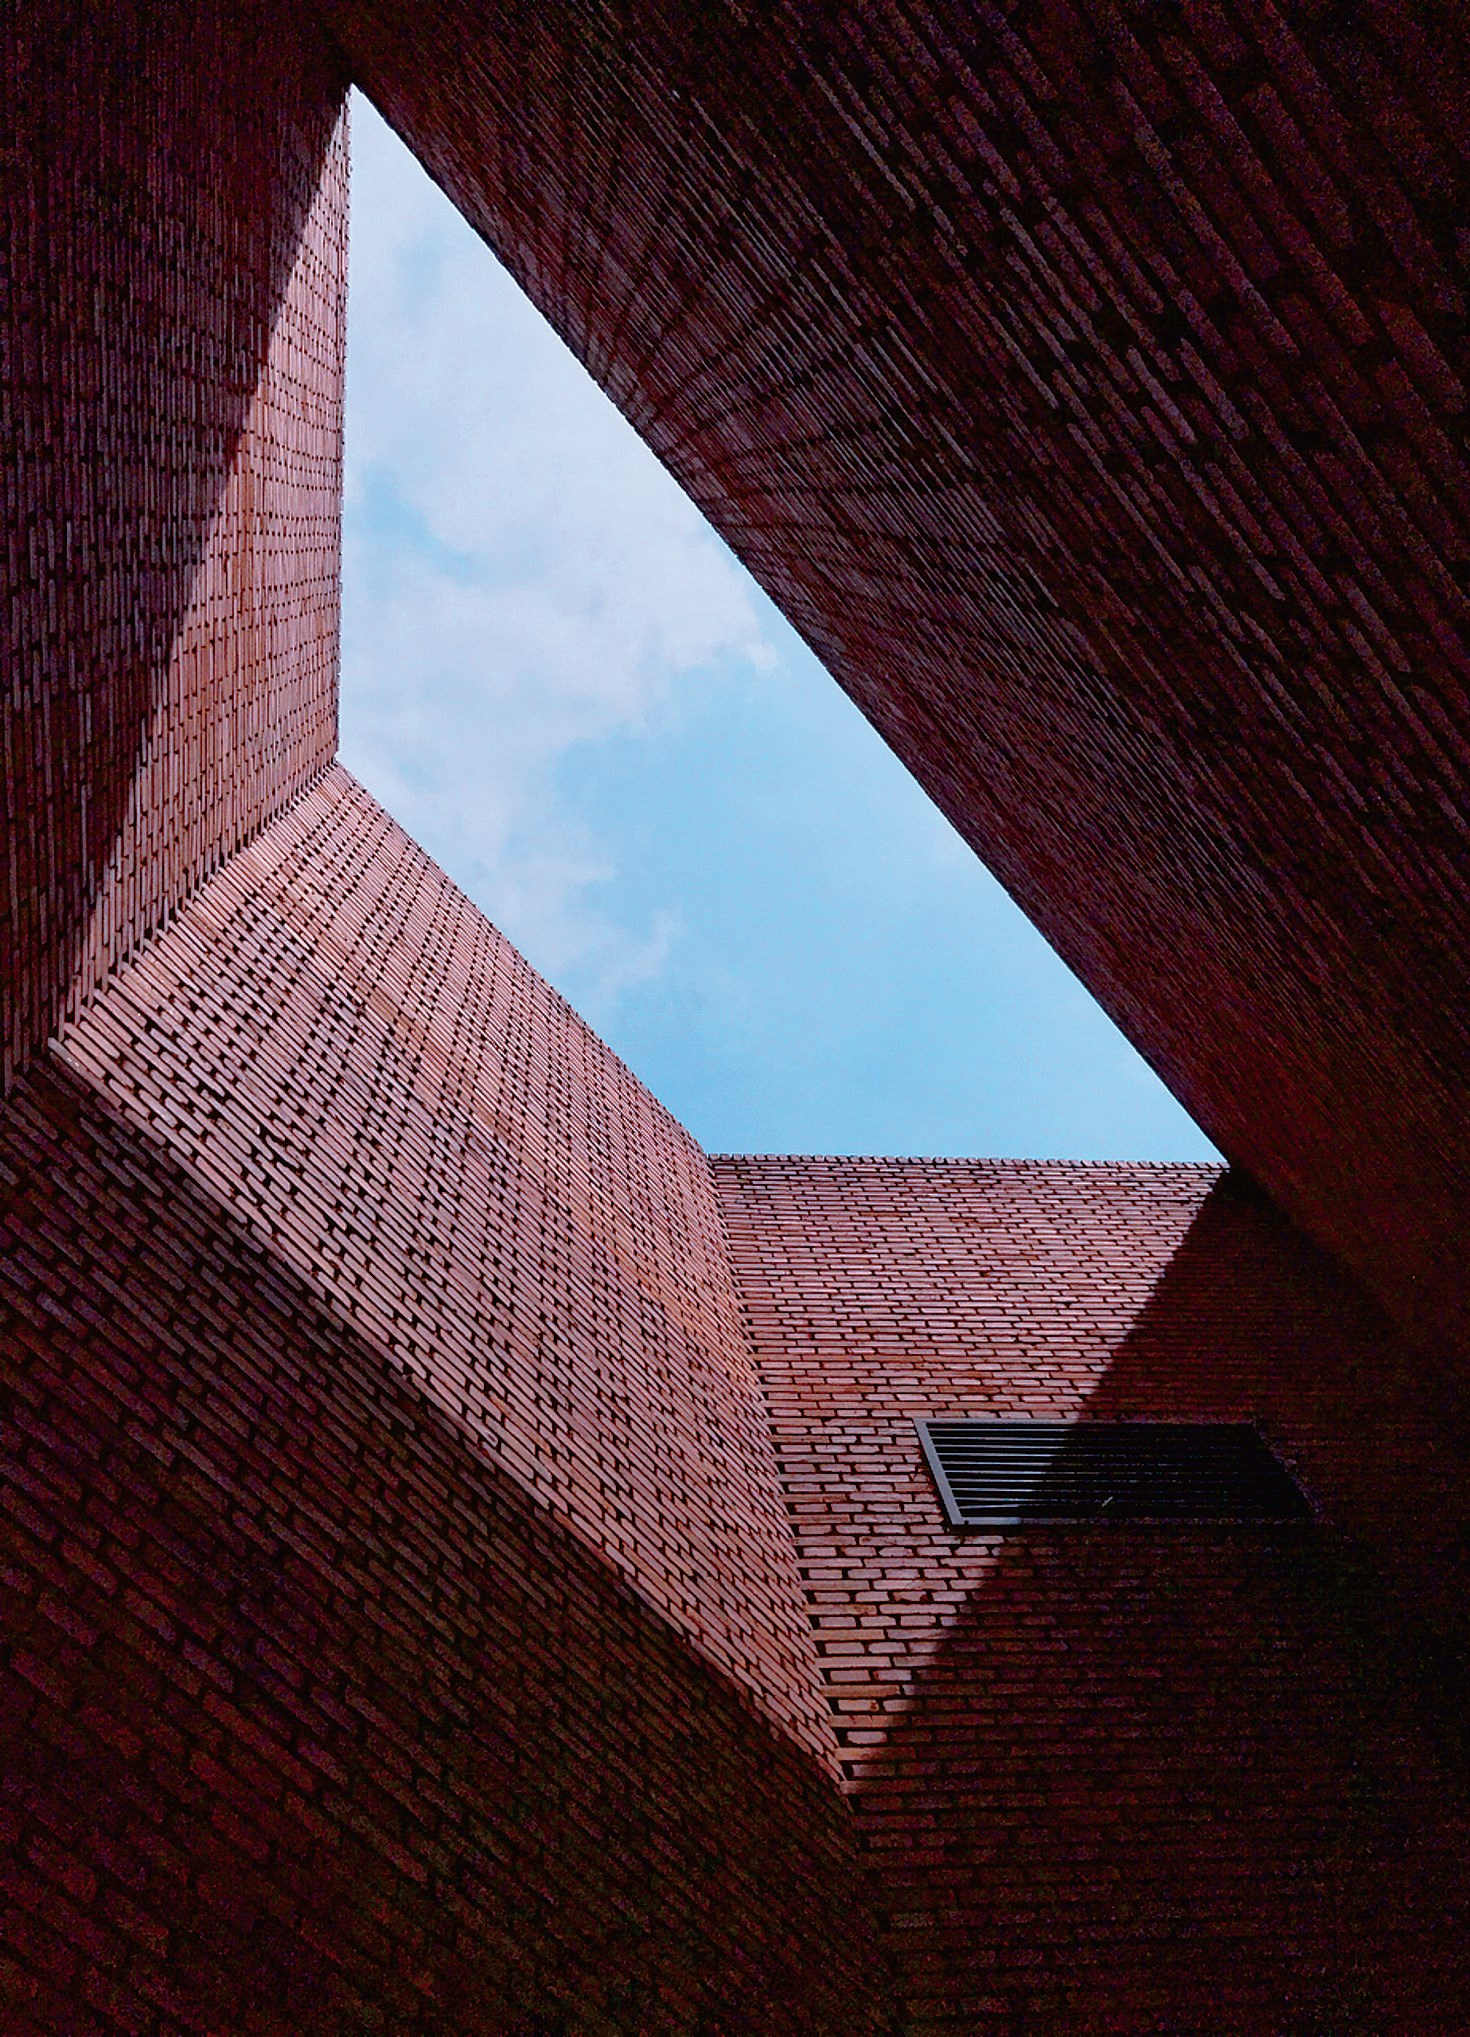 The designer of the Red Brick Art Museum has used an unique architecture language to construct a garden-style museum. — Photos by Zhu Jing